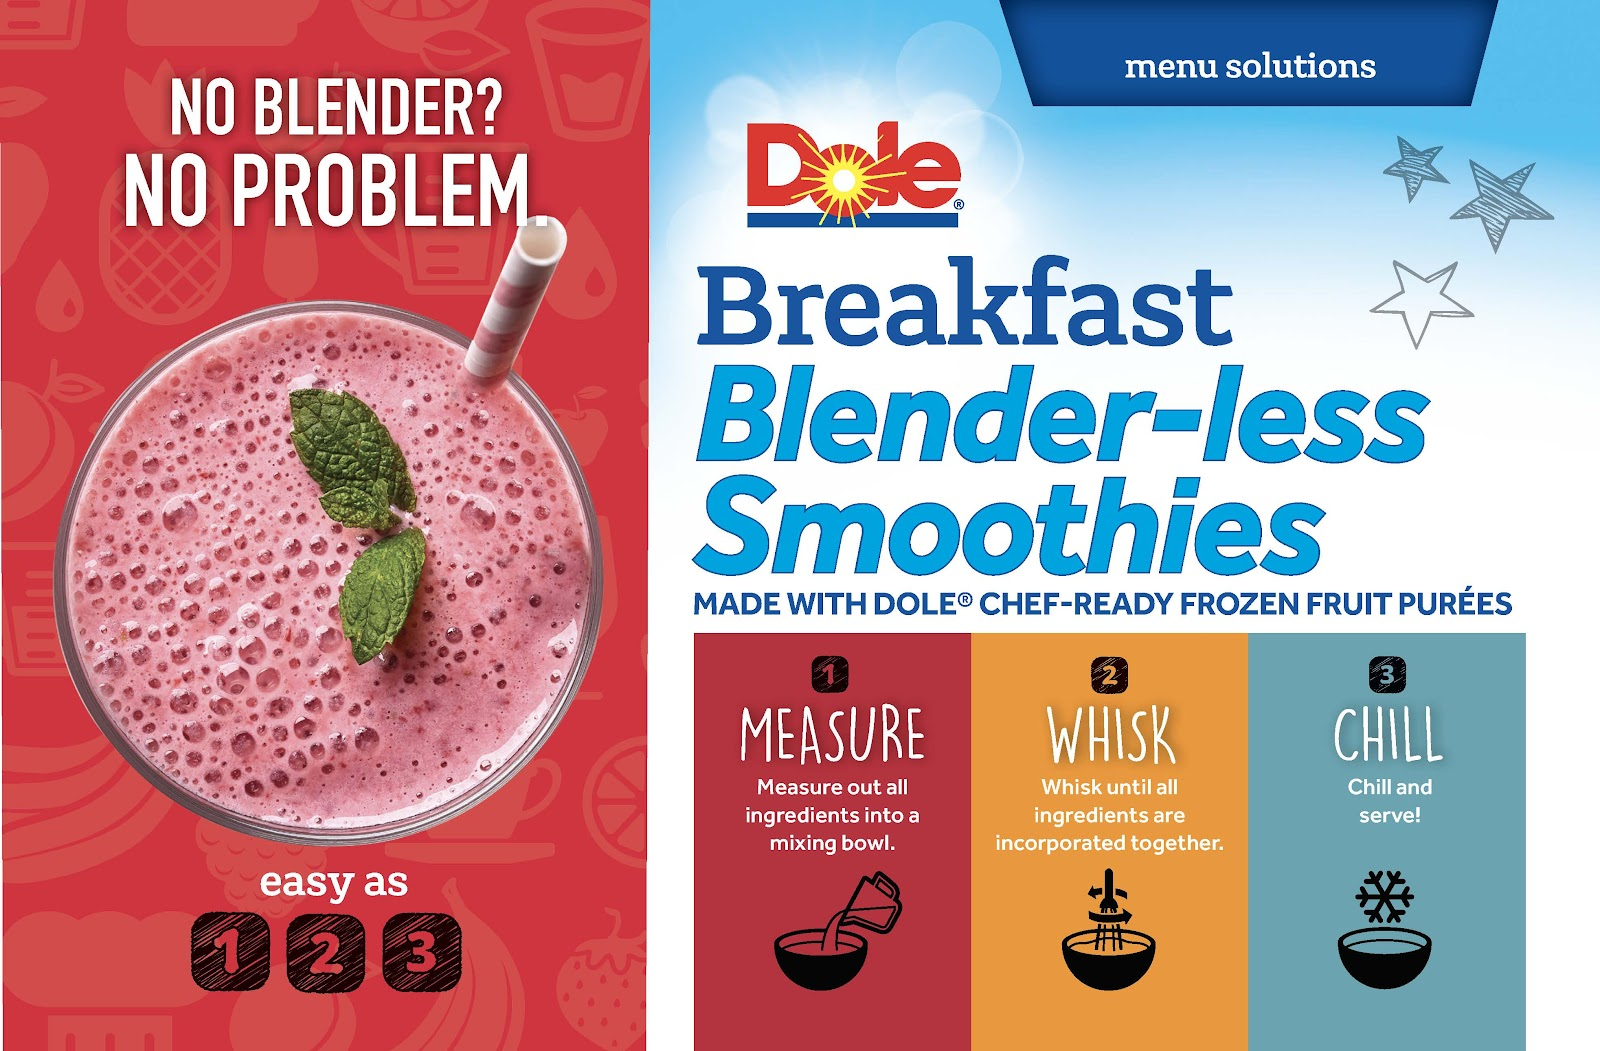 Dole brand images for Blenderless Smoothies and directions how to make them